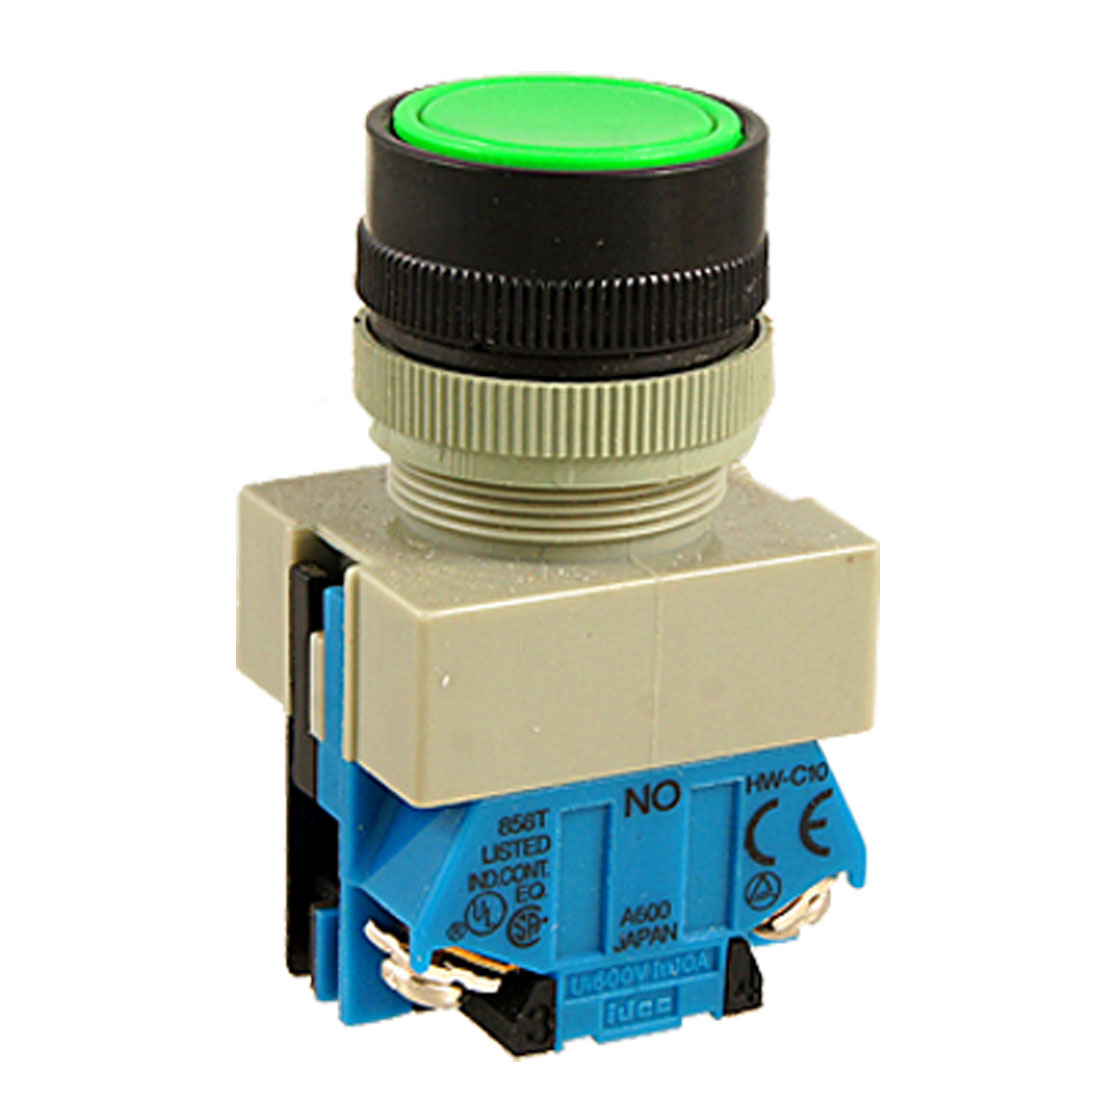 "AC 600V 10A Green Sign Momentary Push Button Switch 22mm 7/8"" 1 NO N/O 1 NC N/C"